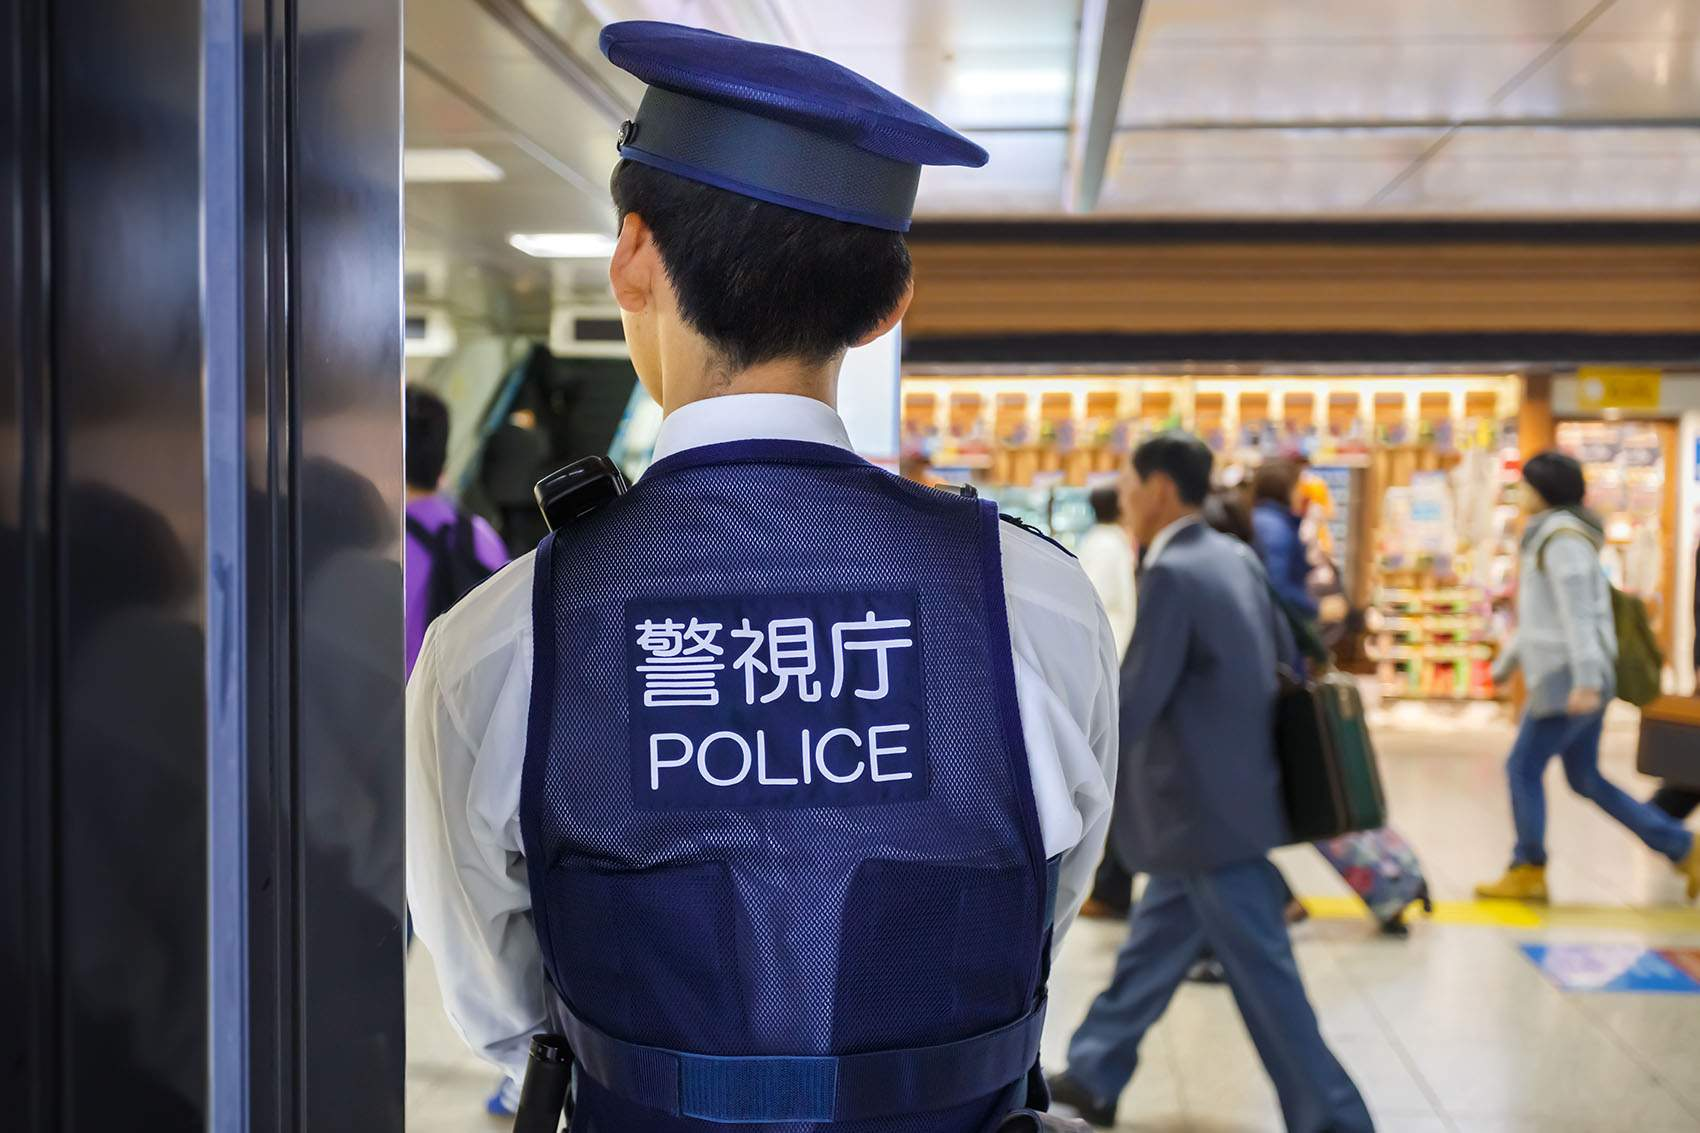 TOKYO, JAPAN - NOVEMBER 26: Policeman in Tokyo, Japan on November 26, 2013. Tokyo station provides maximun security by placing policemen in many areas of the station